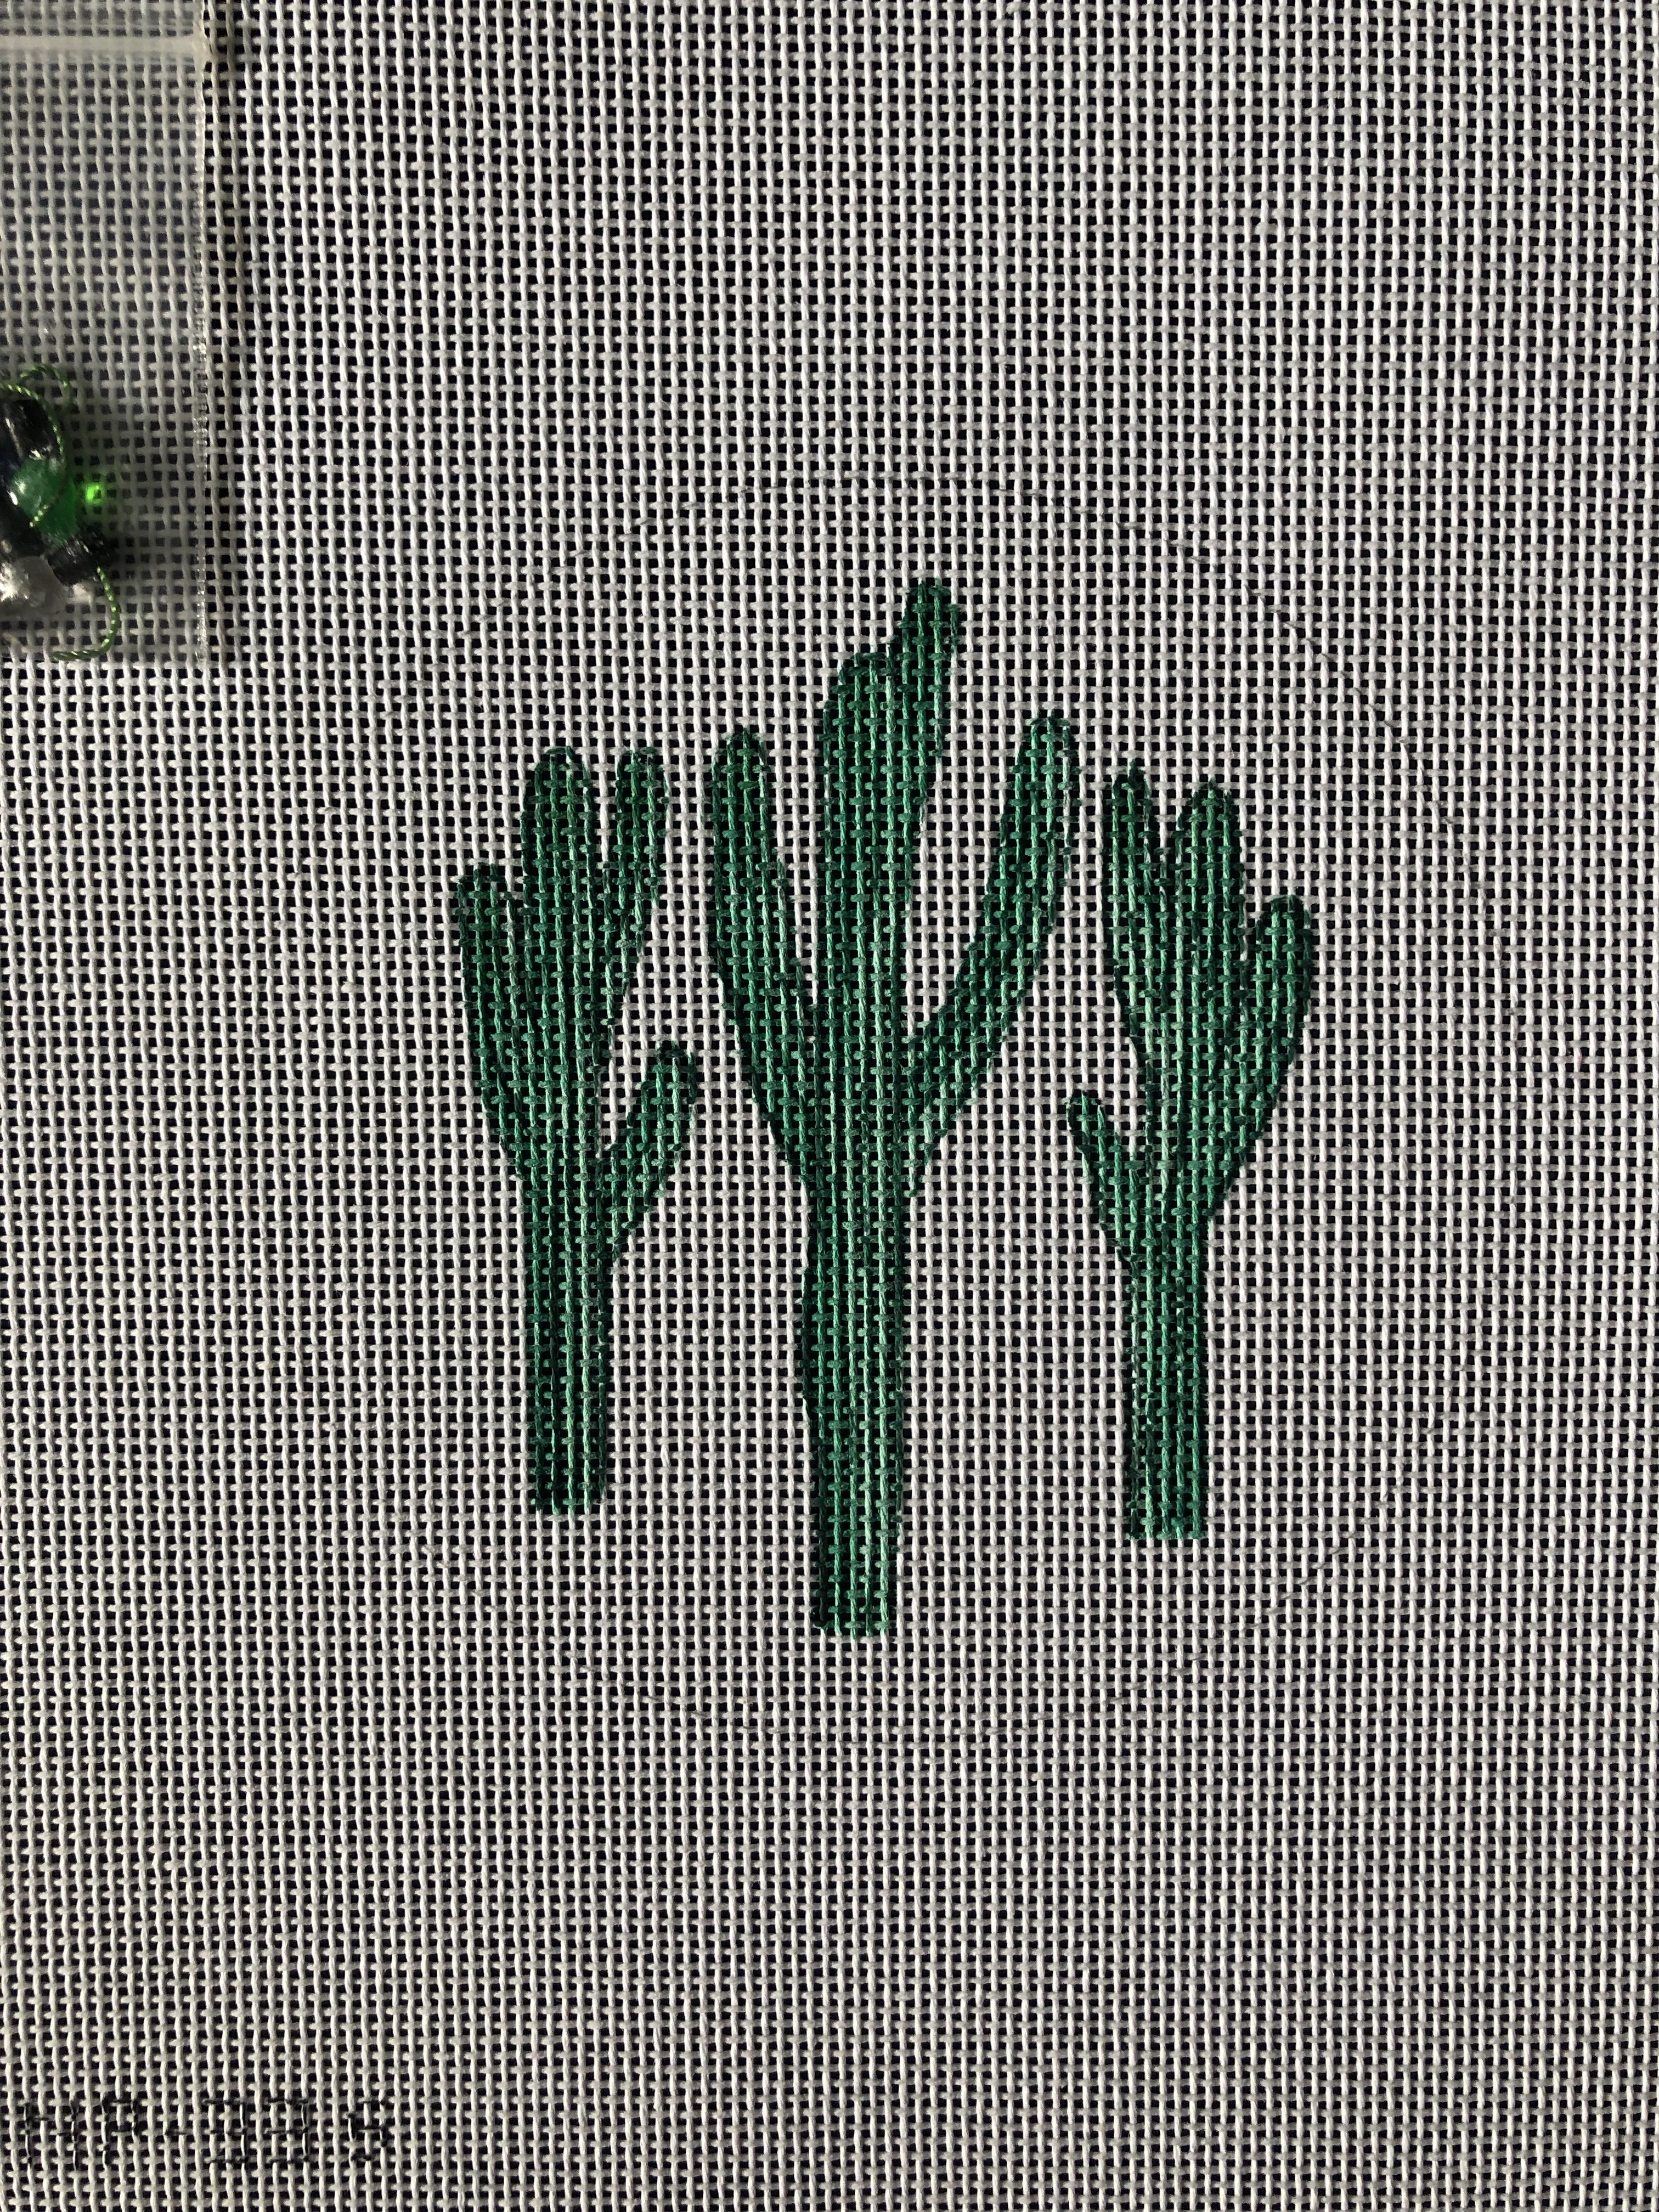 Cactus with Lights Round